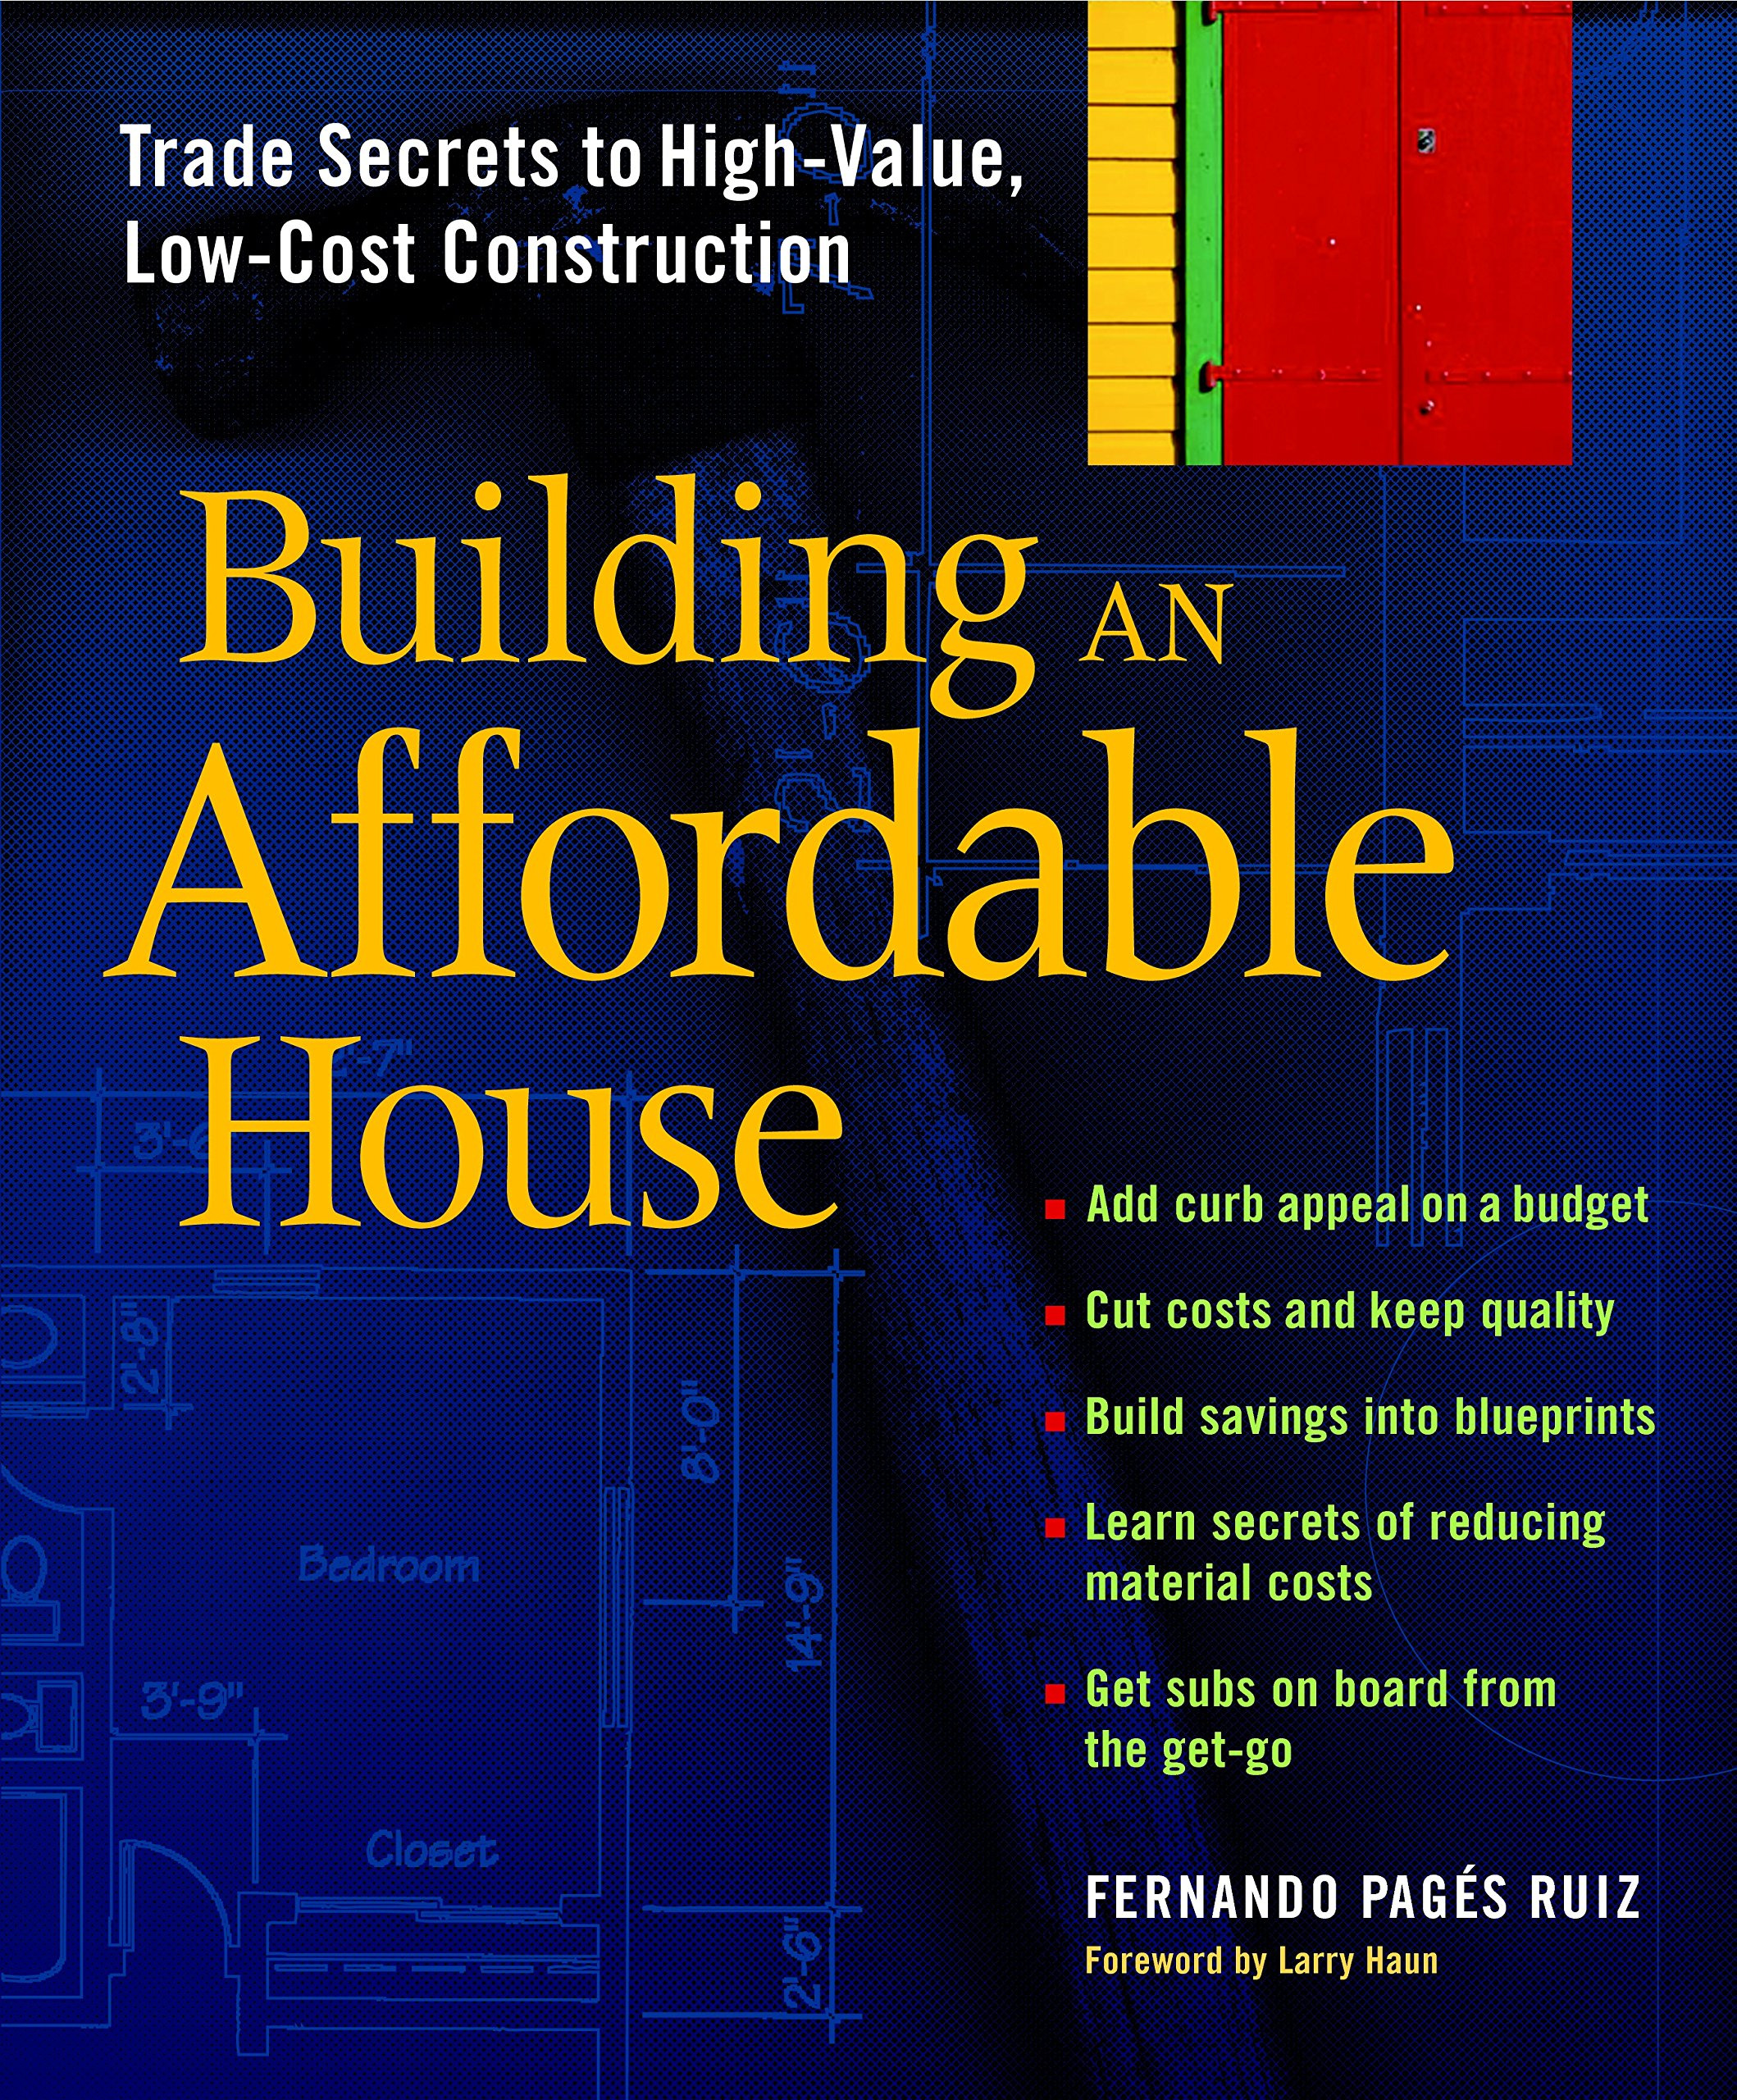 Most Inexpensive House to Build Inspirational Building An Affordable House Trade Secrets to High Value